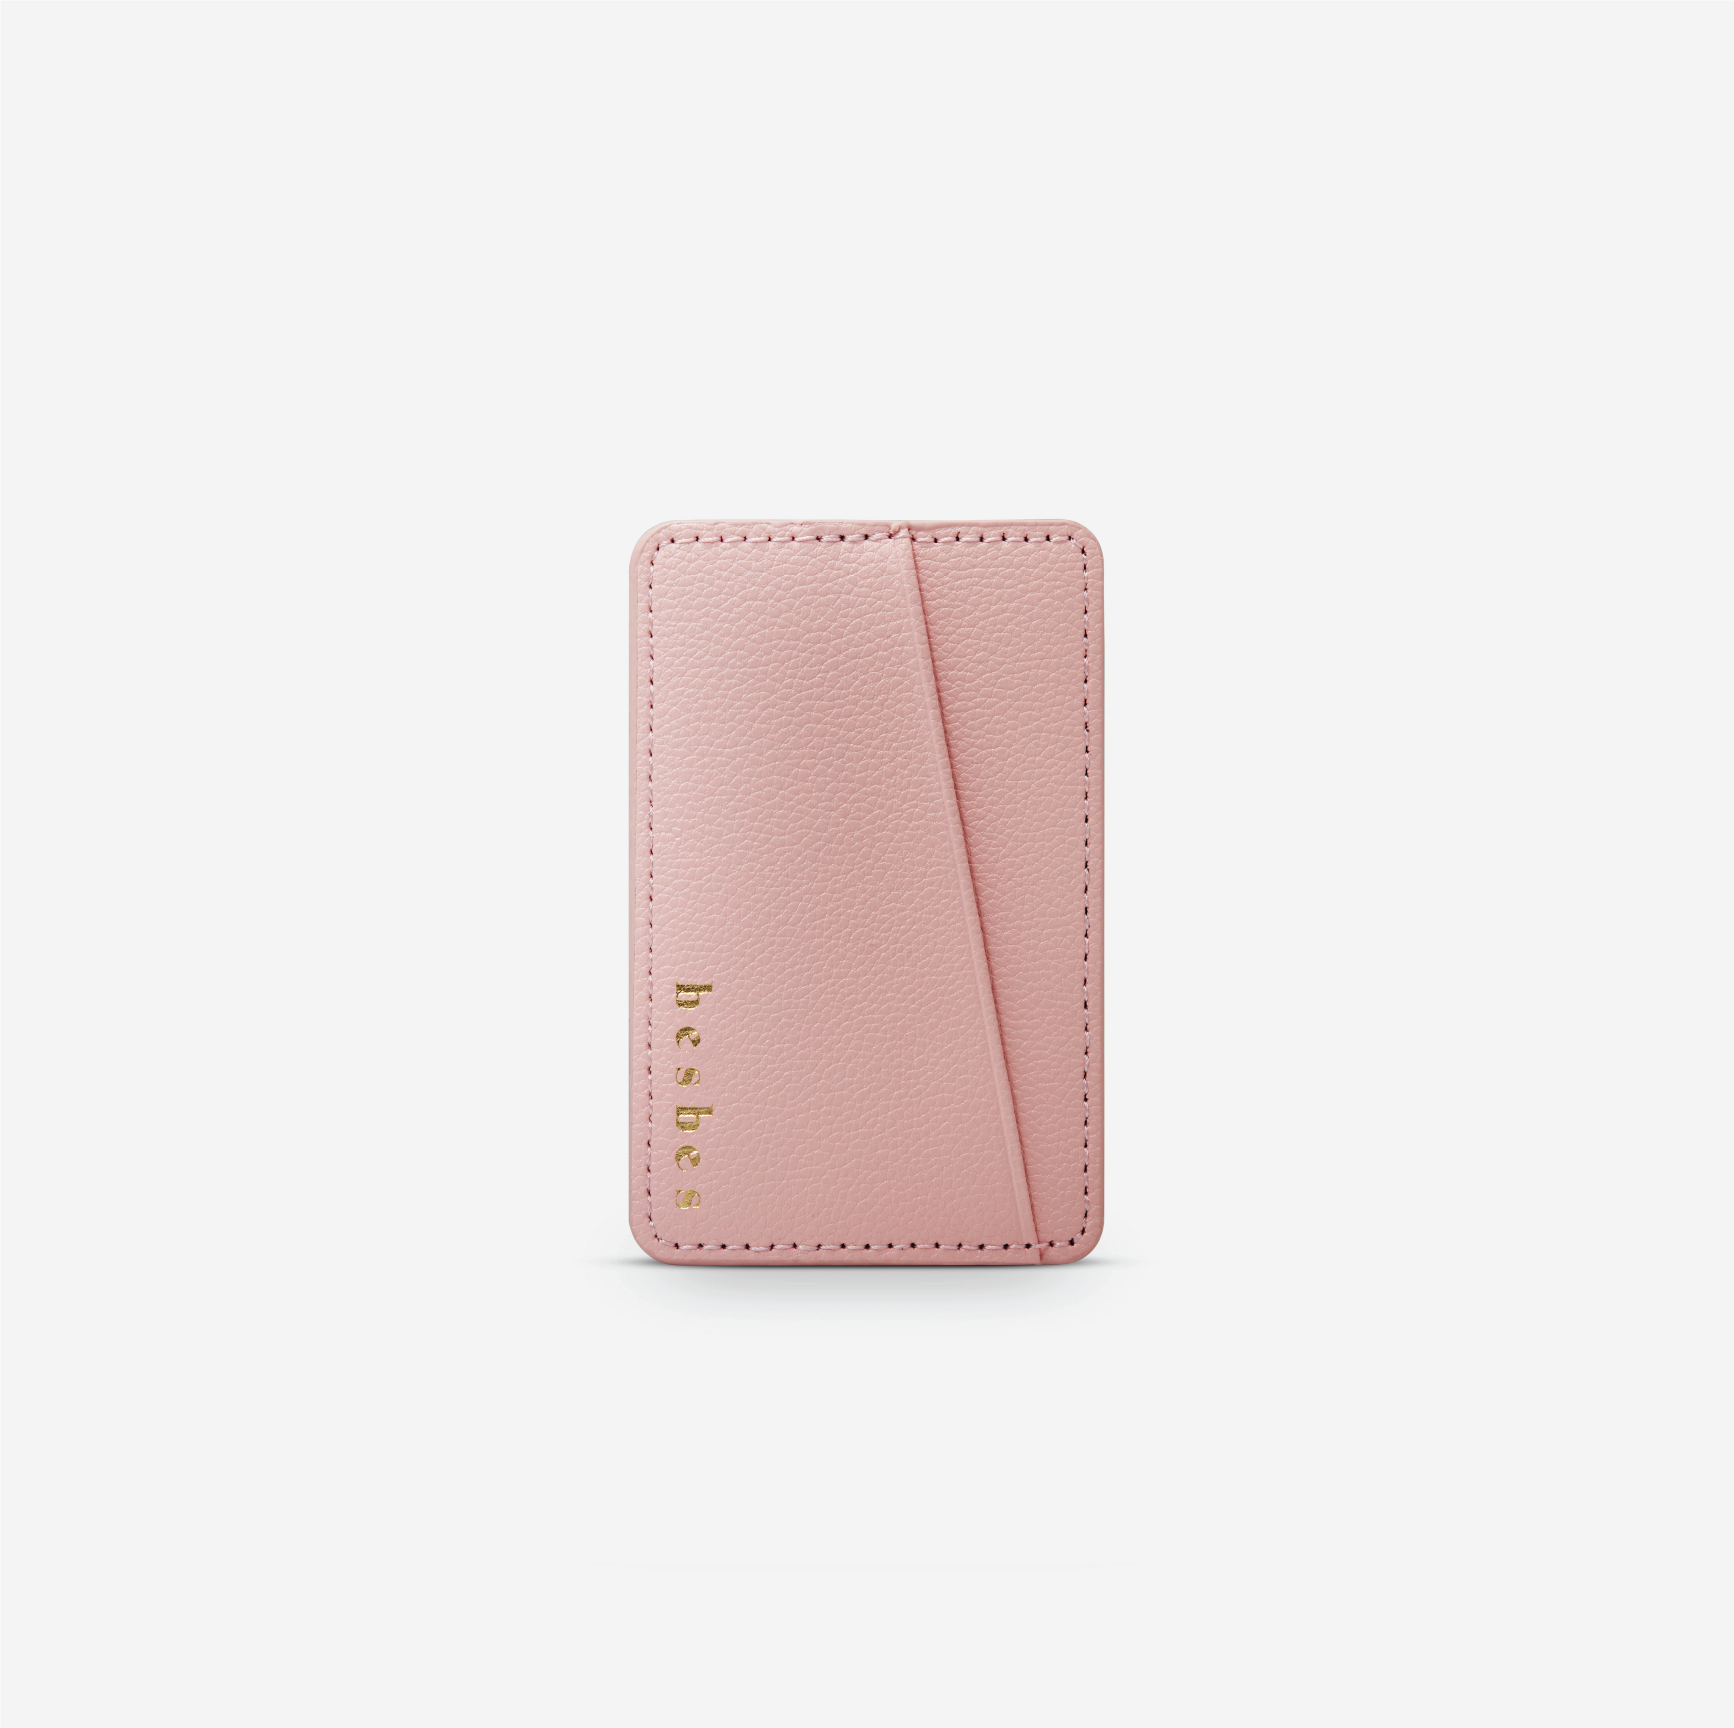 Blush Pink Vegan Leather Pocket